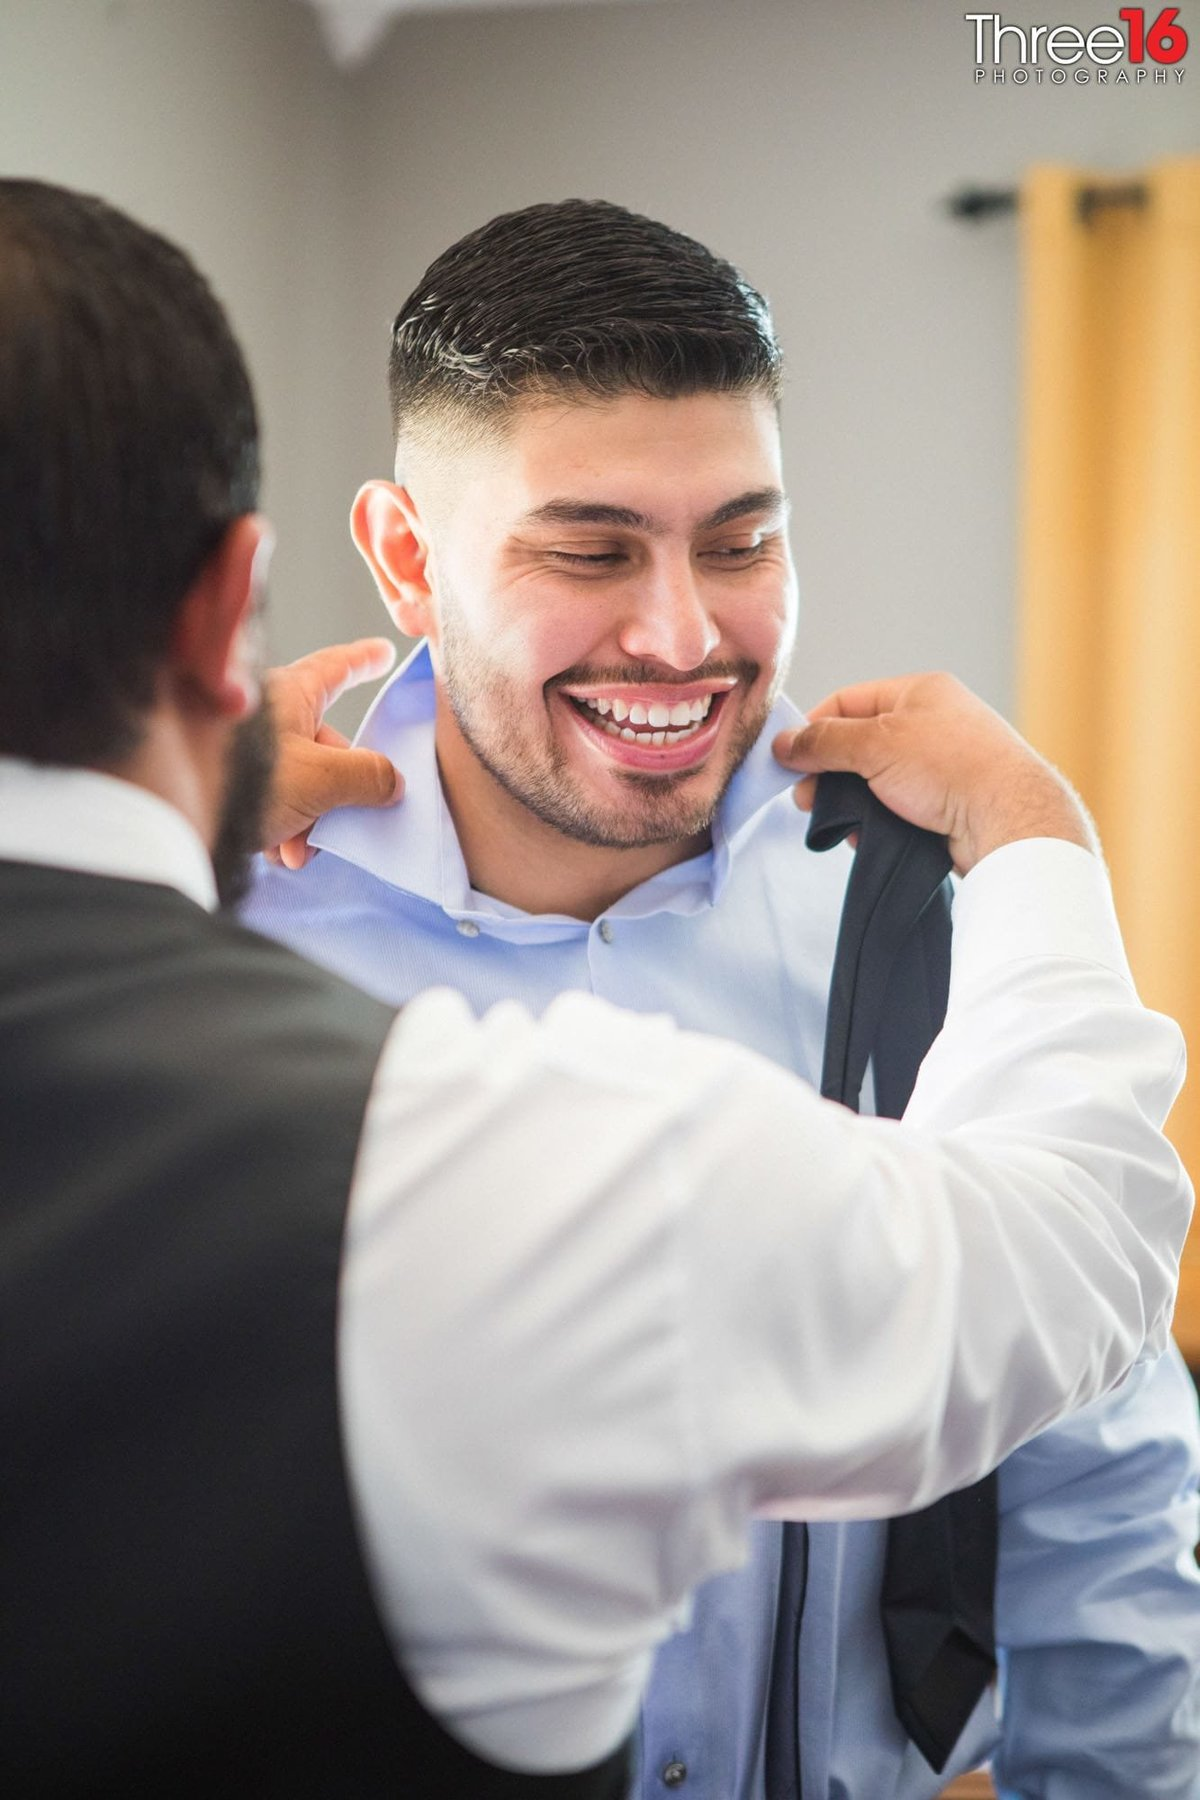 Groom getting help with his tie while getting ready for the wedding